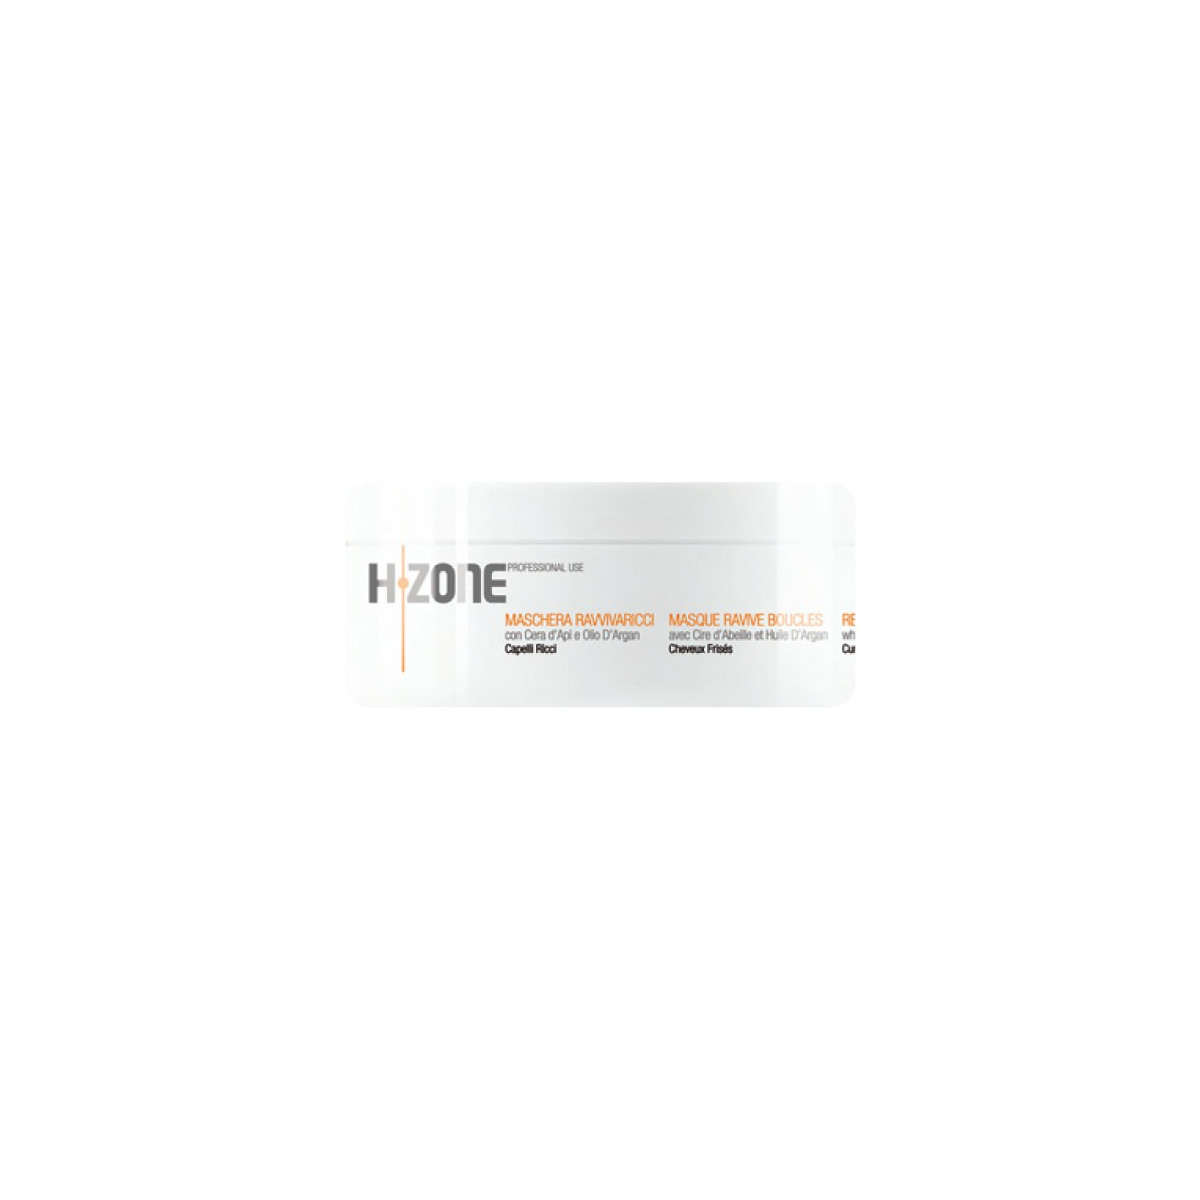 Masque ravive boucle H-Zone